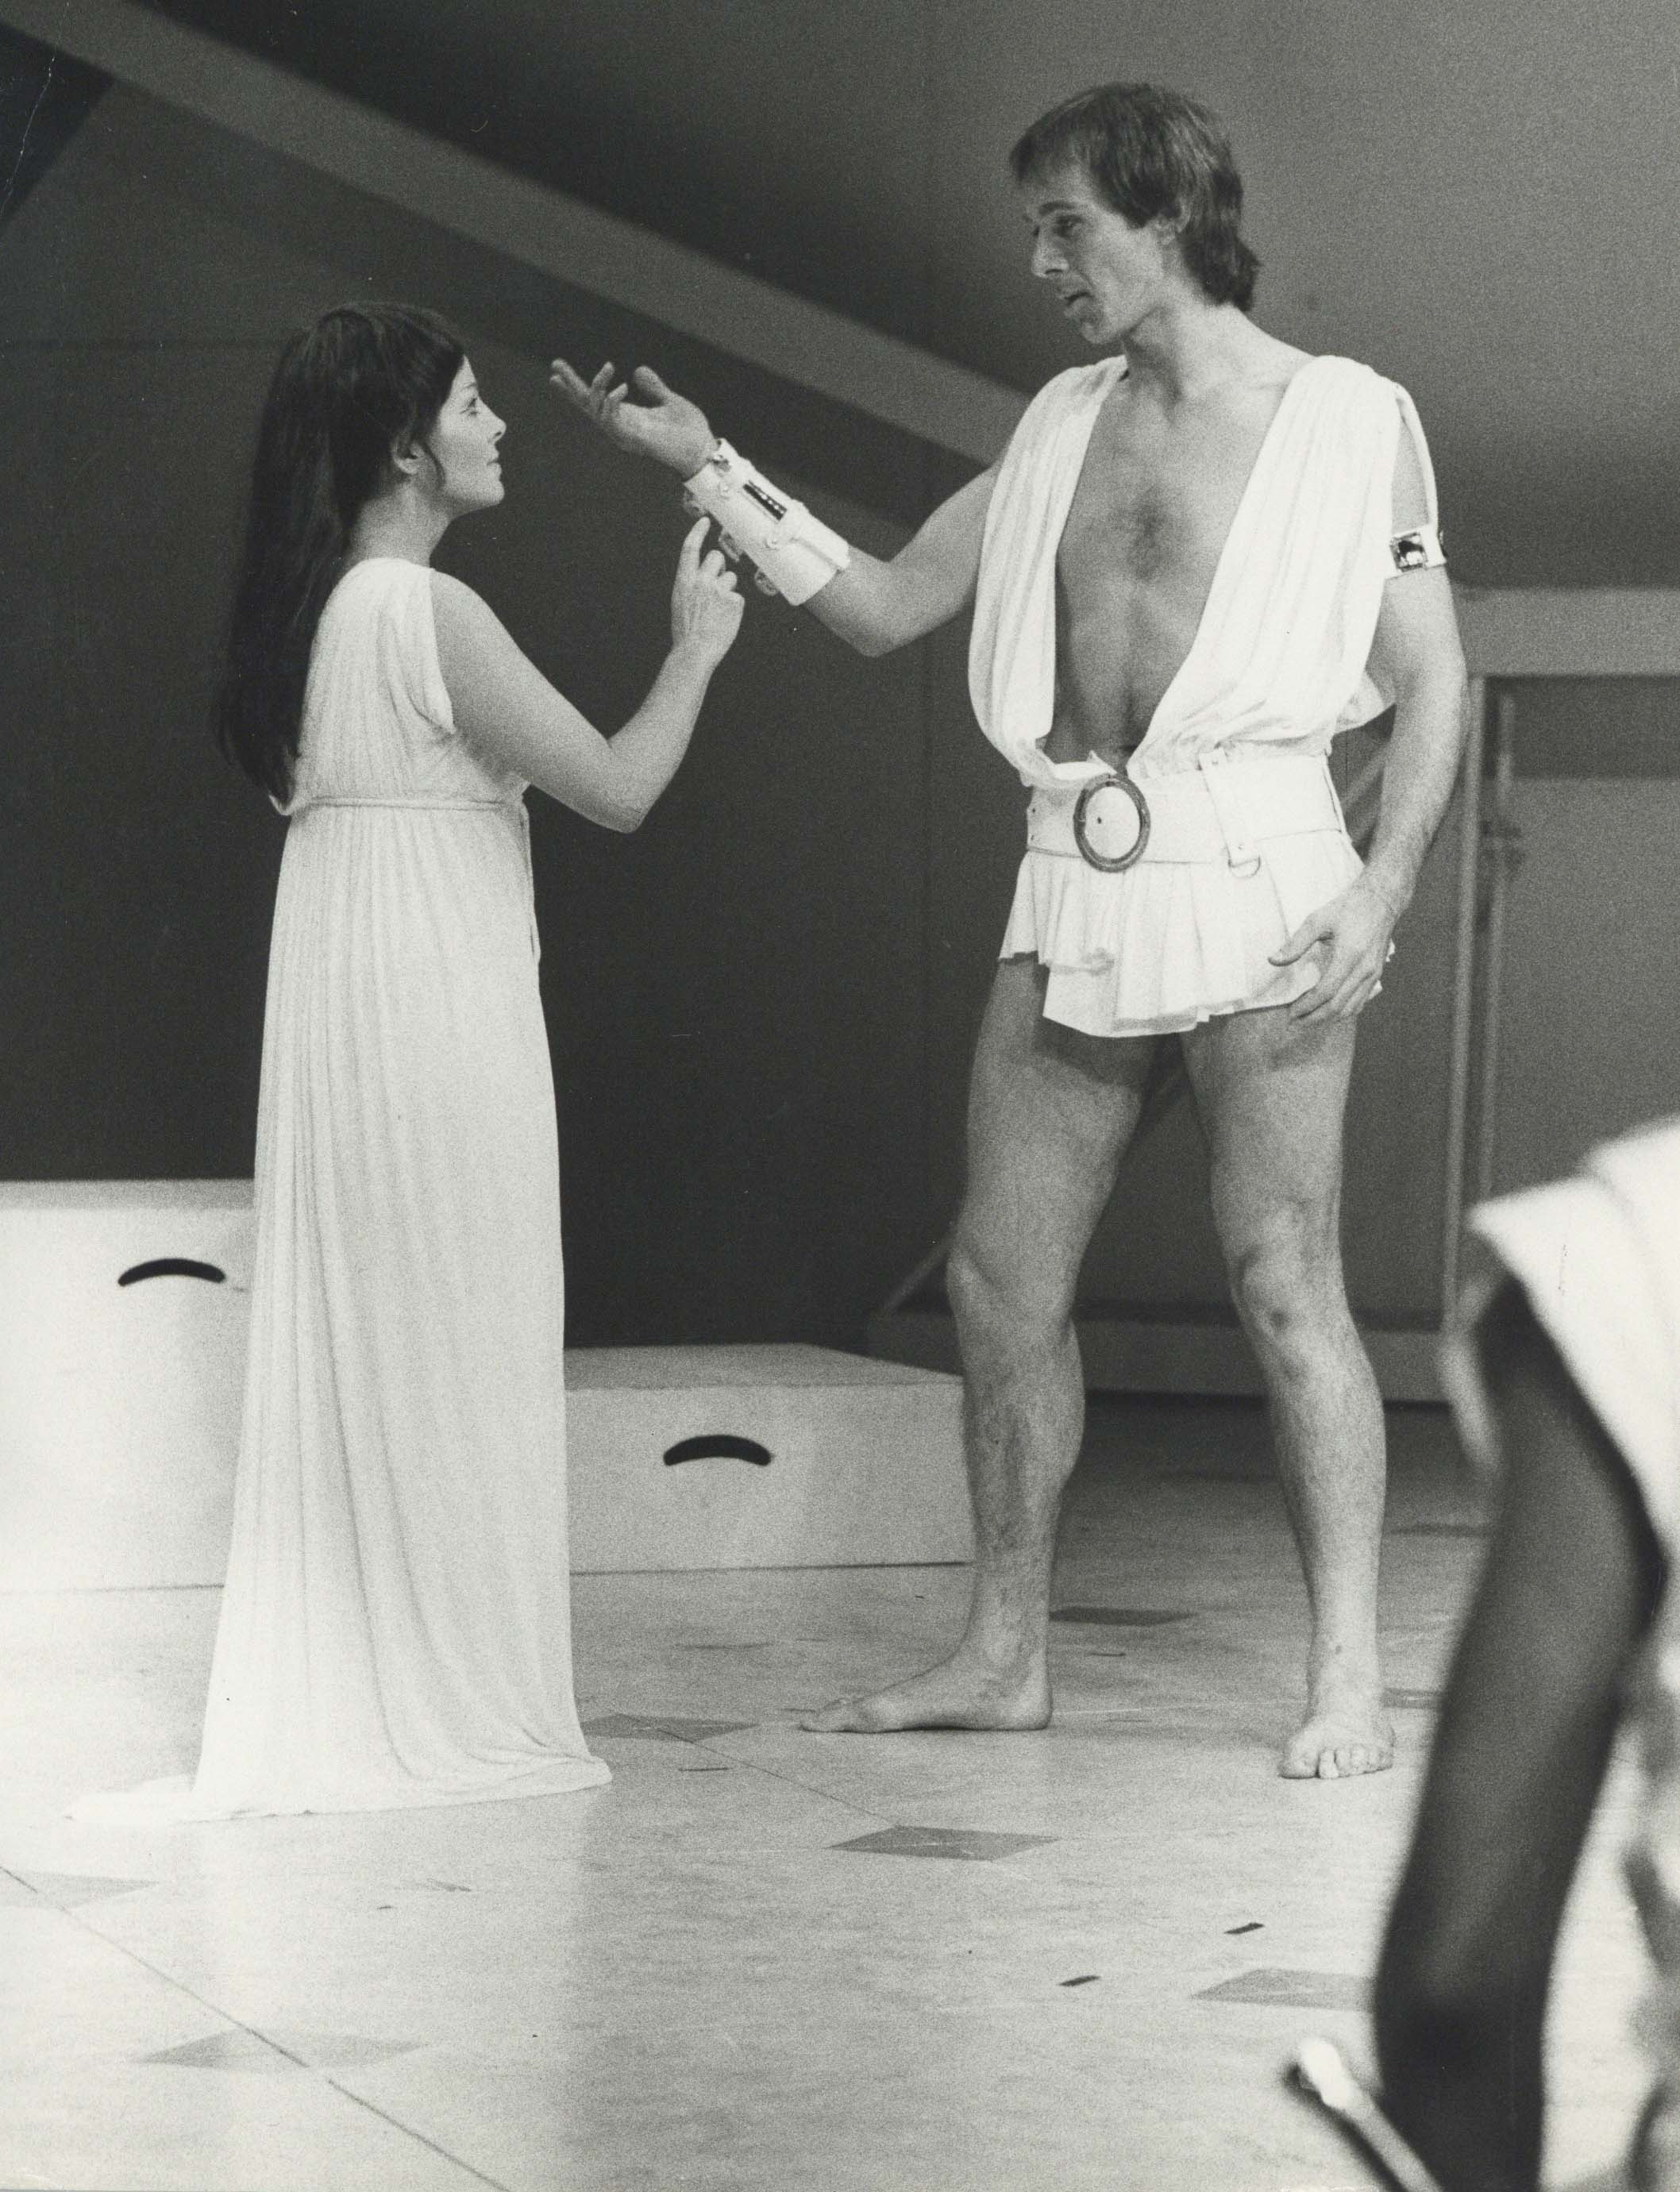 Production photograph - Caesar and Cleopatra - Anna Calder-Marshall, Peter Egan - Photographer John Timbers - 1971